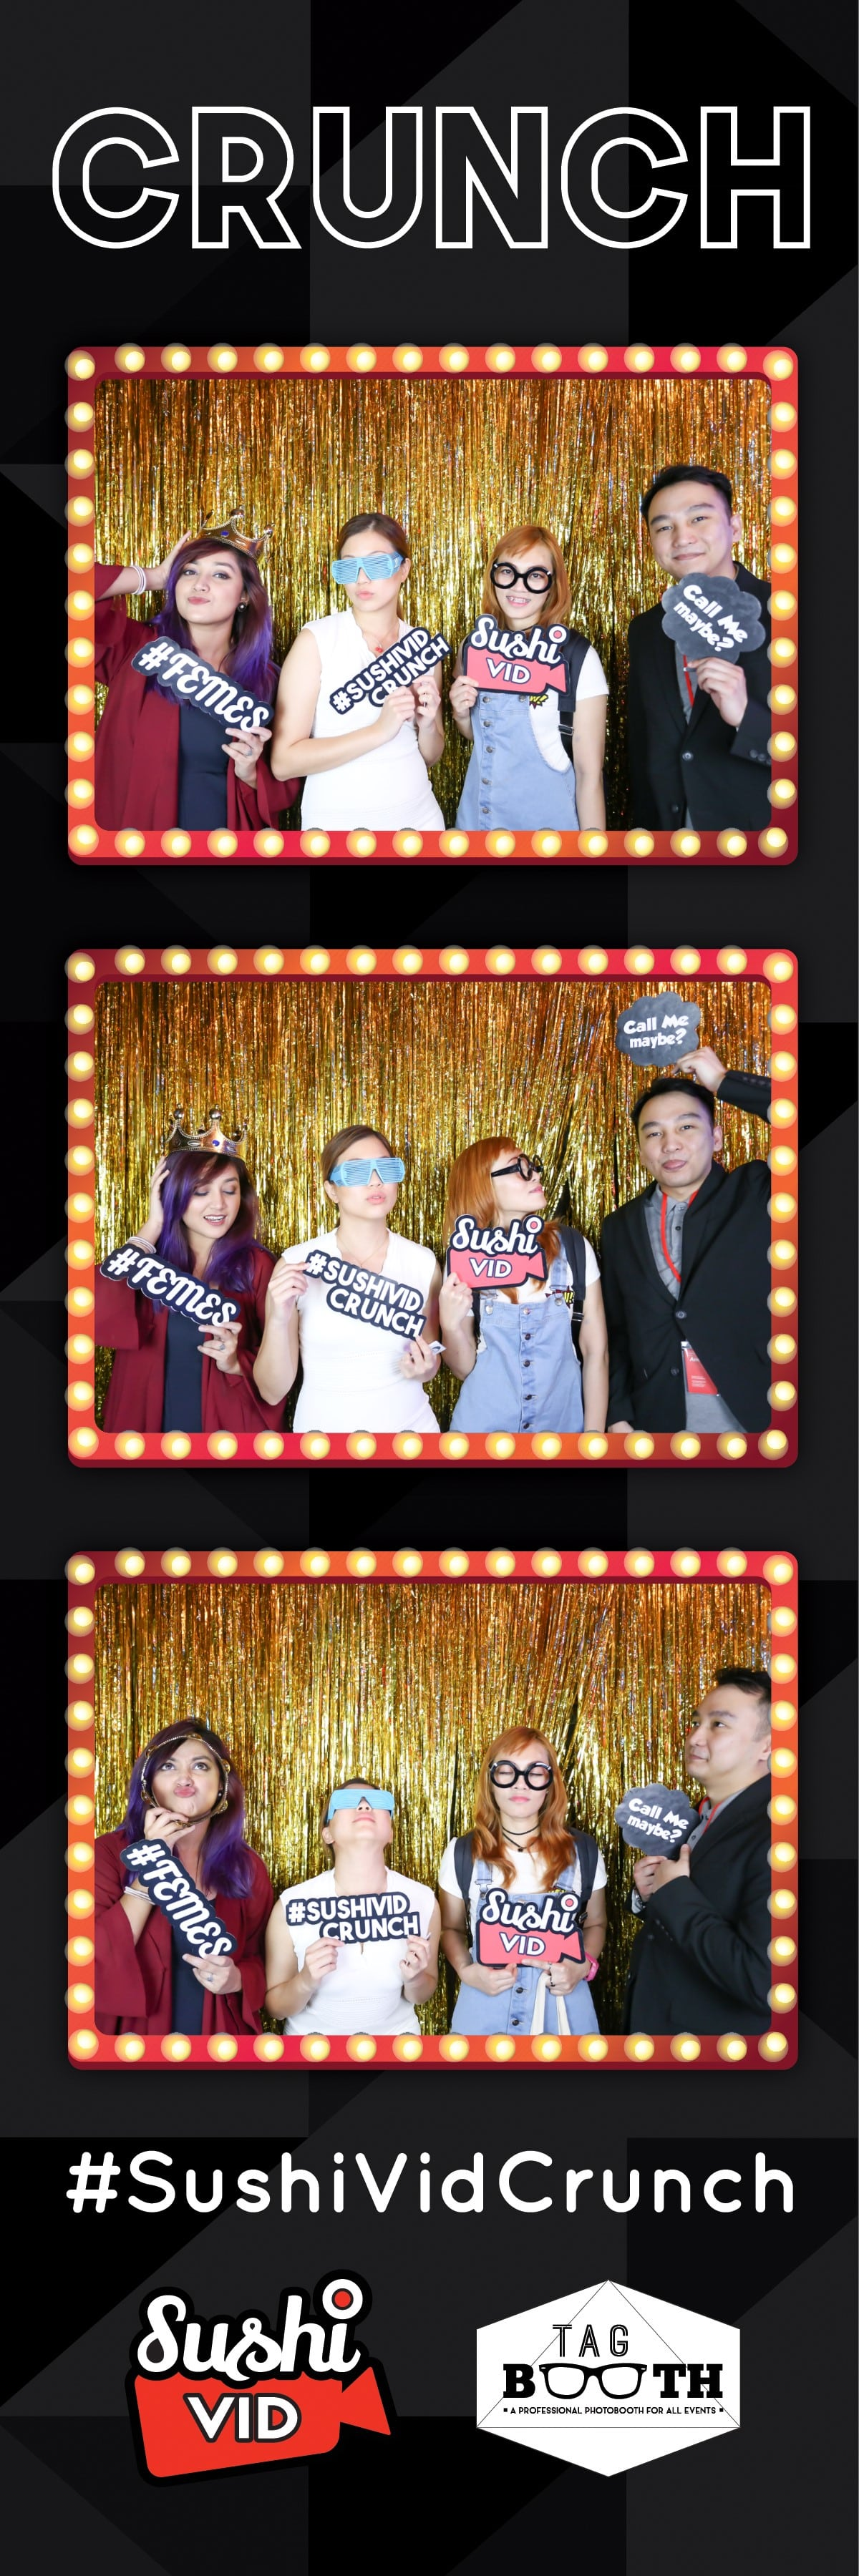 Sushivid+crunch+tagbooth1+9